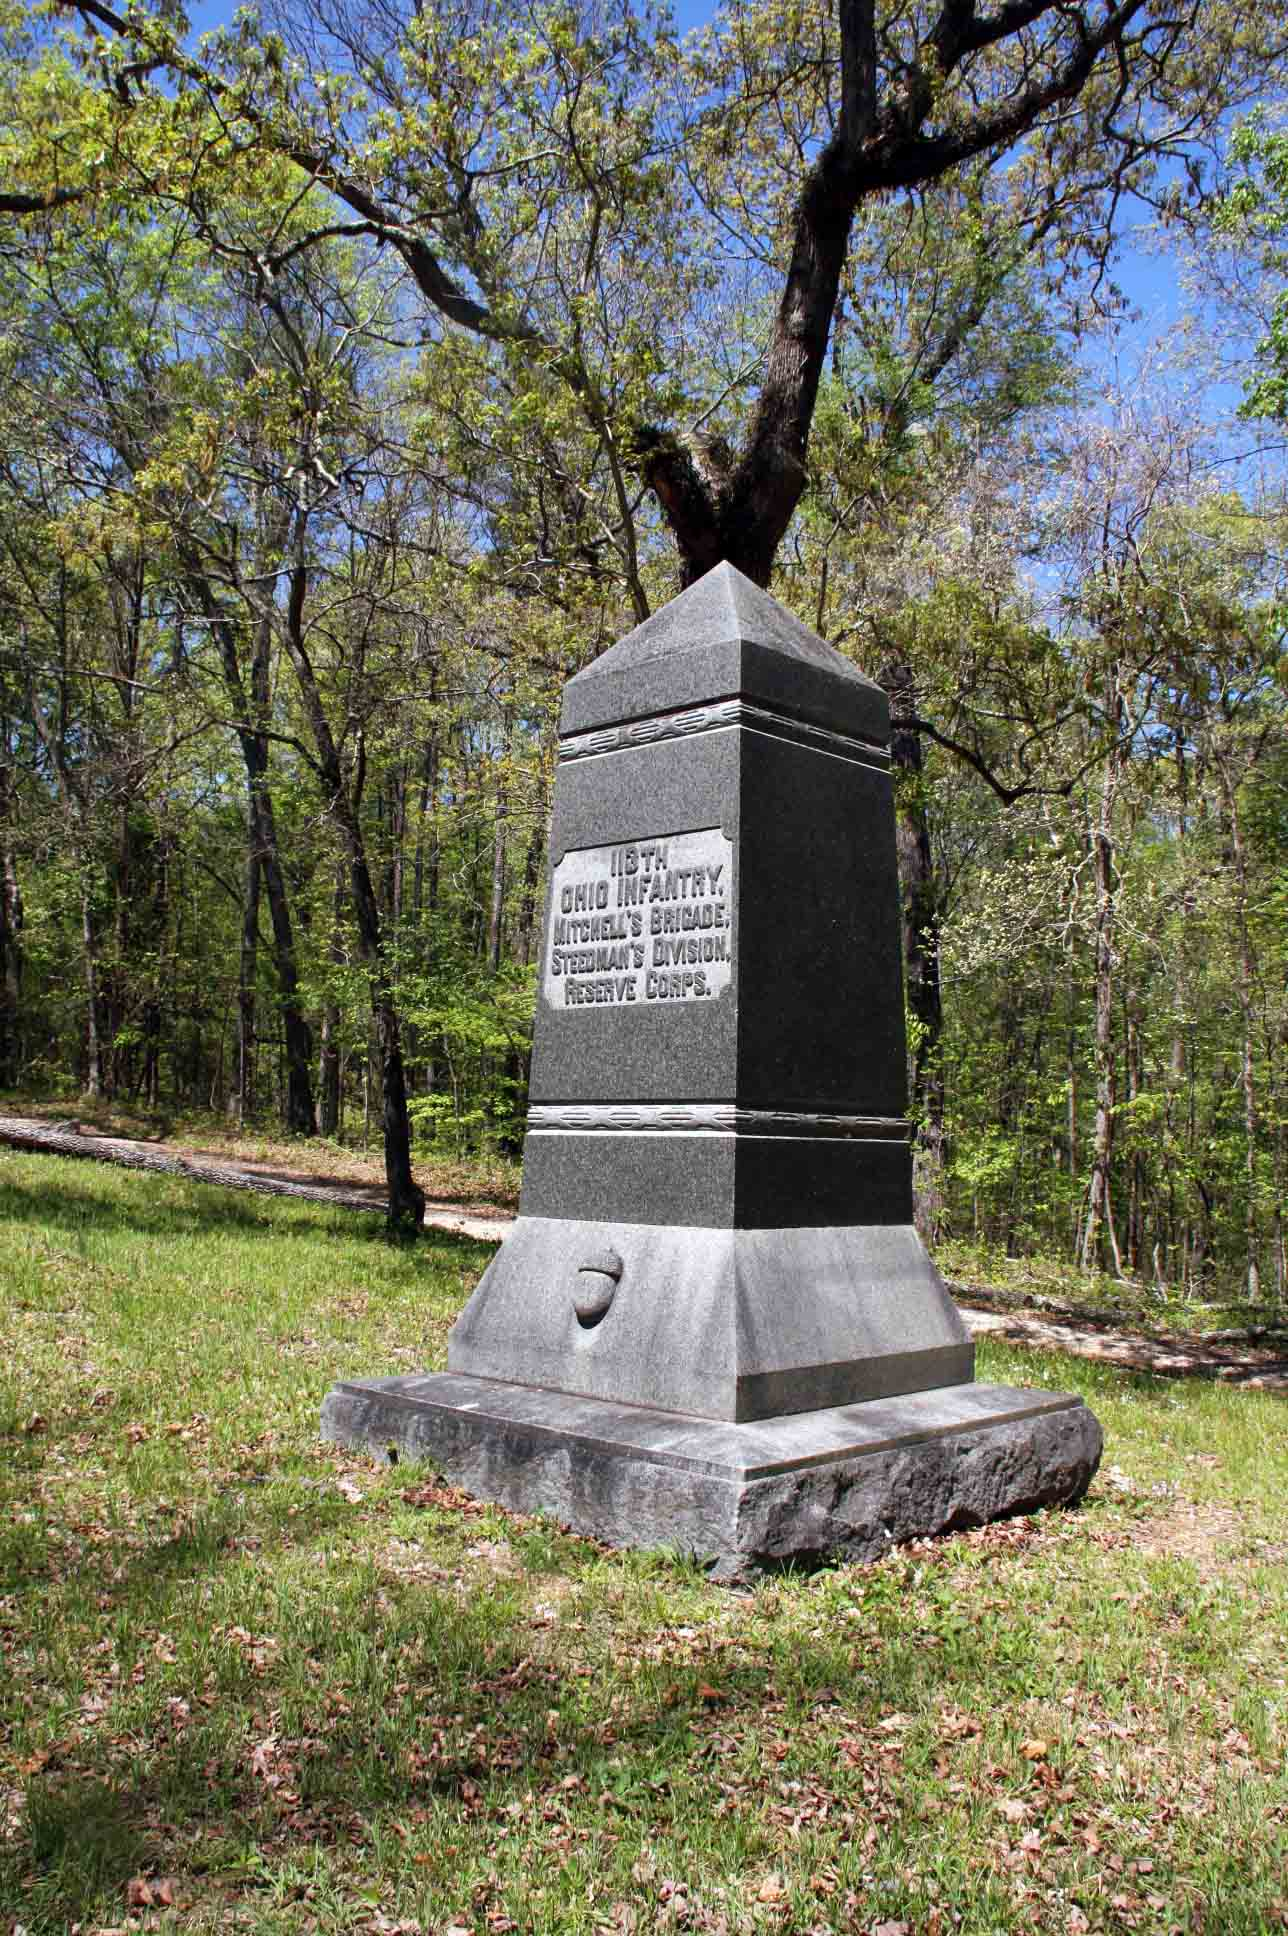 113th Ohio Infantry Regiment Monument, click photo to enlarge.